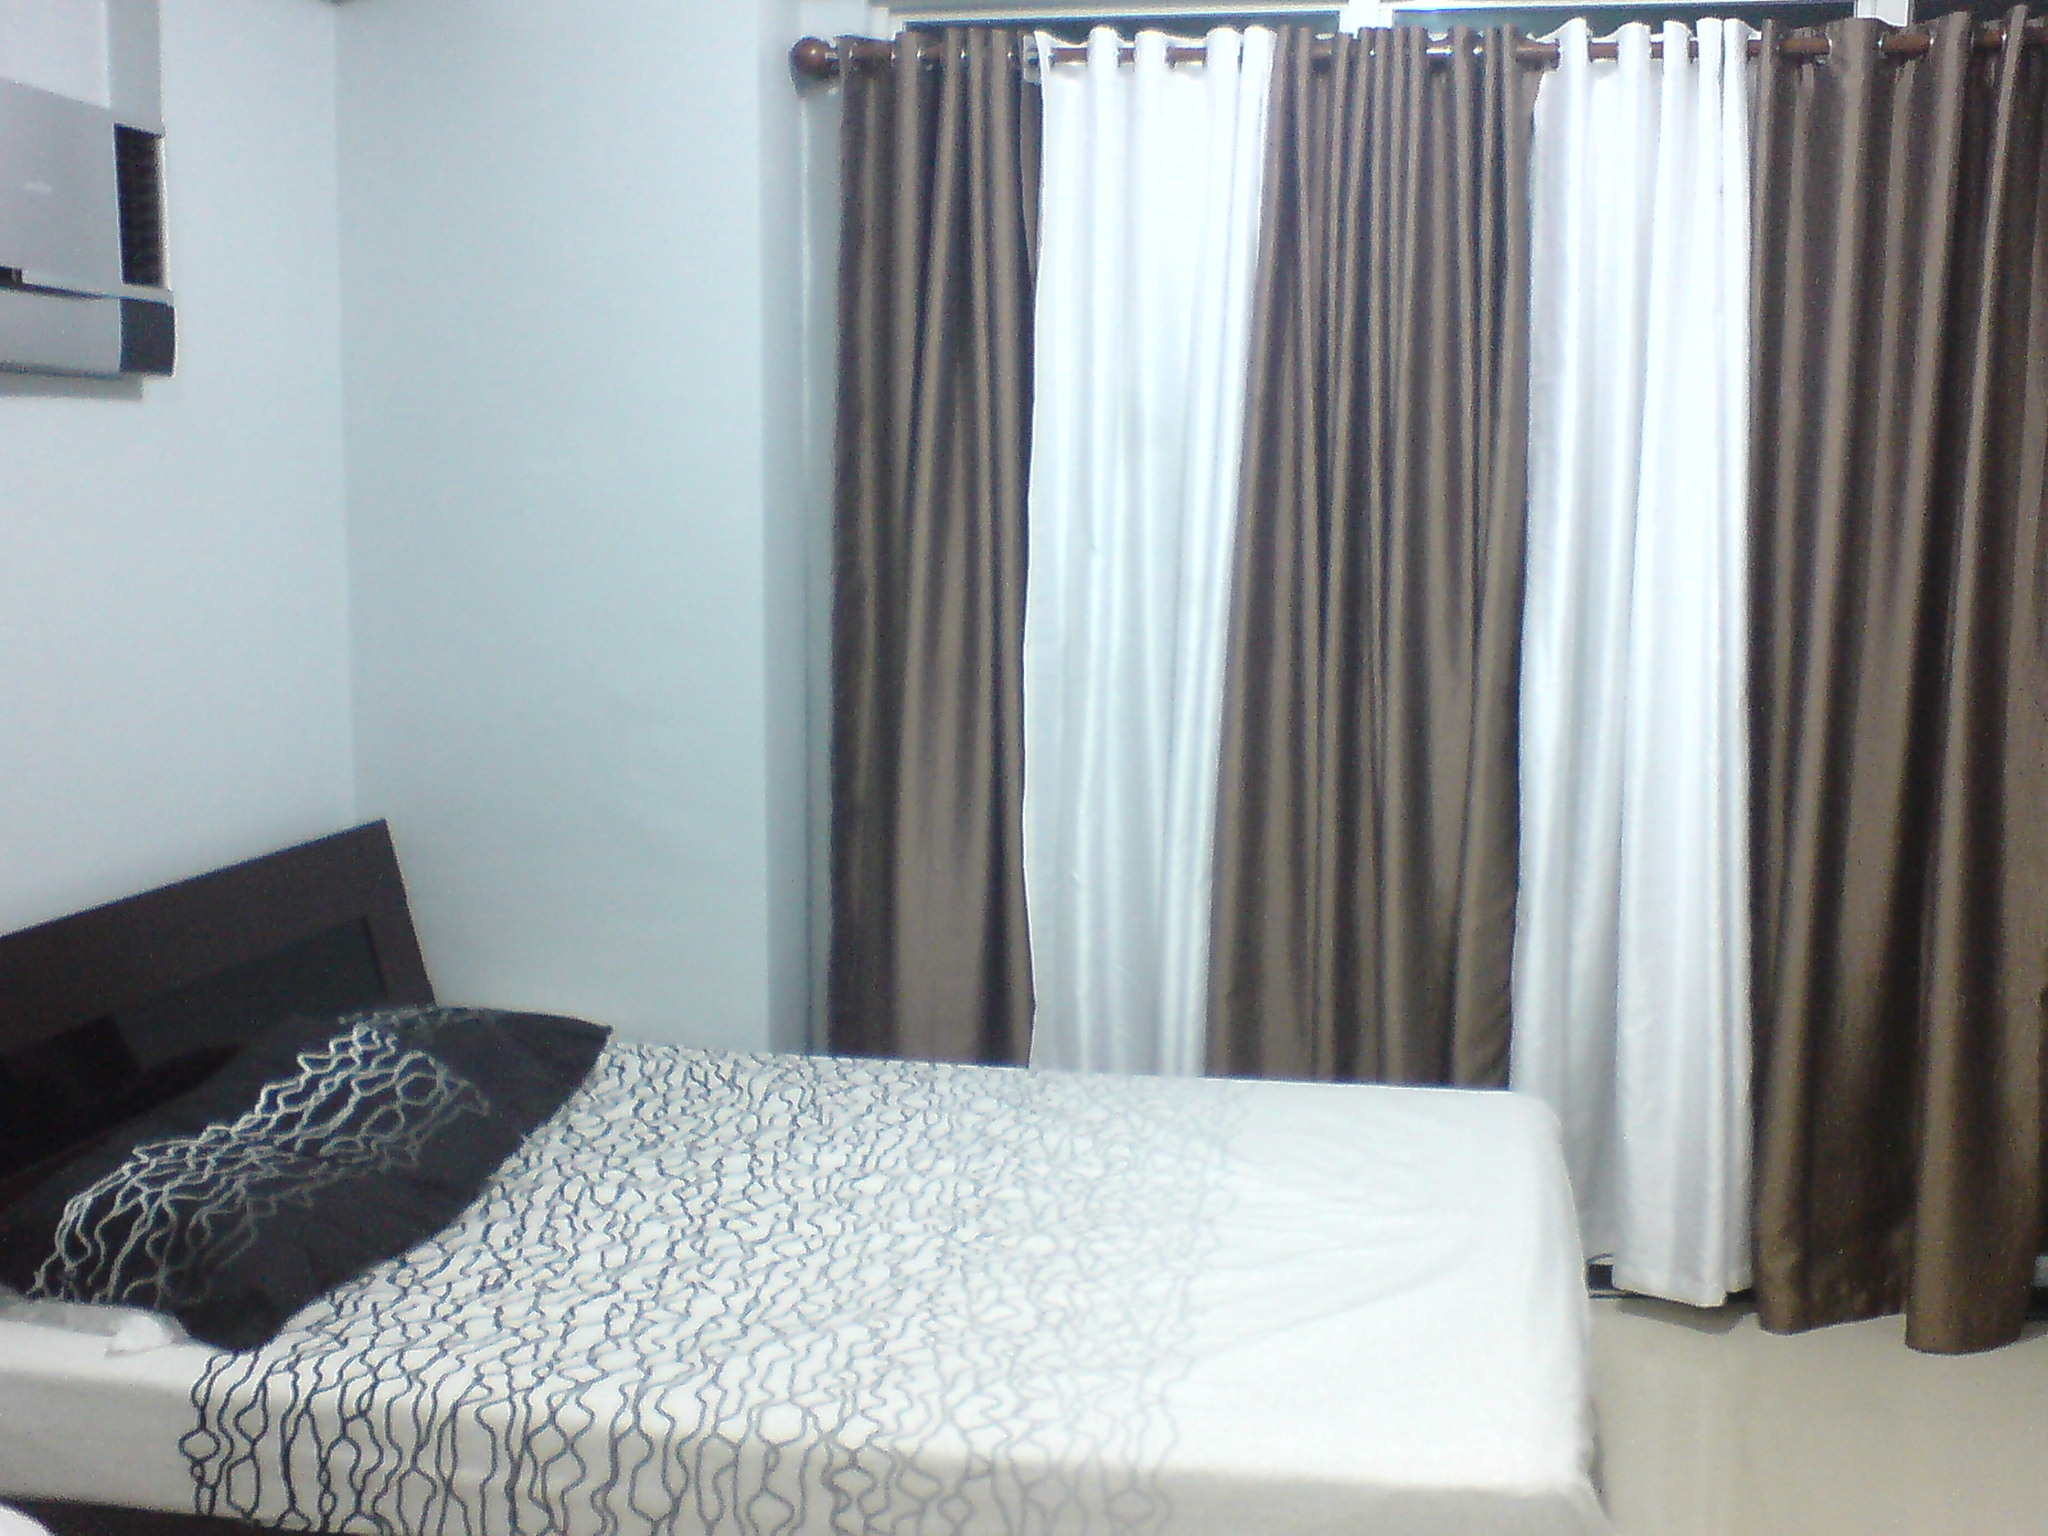 FOR SALE: Apartment / Condo / Townhouse Manila Metropolitan Area > Mandaluyong 9